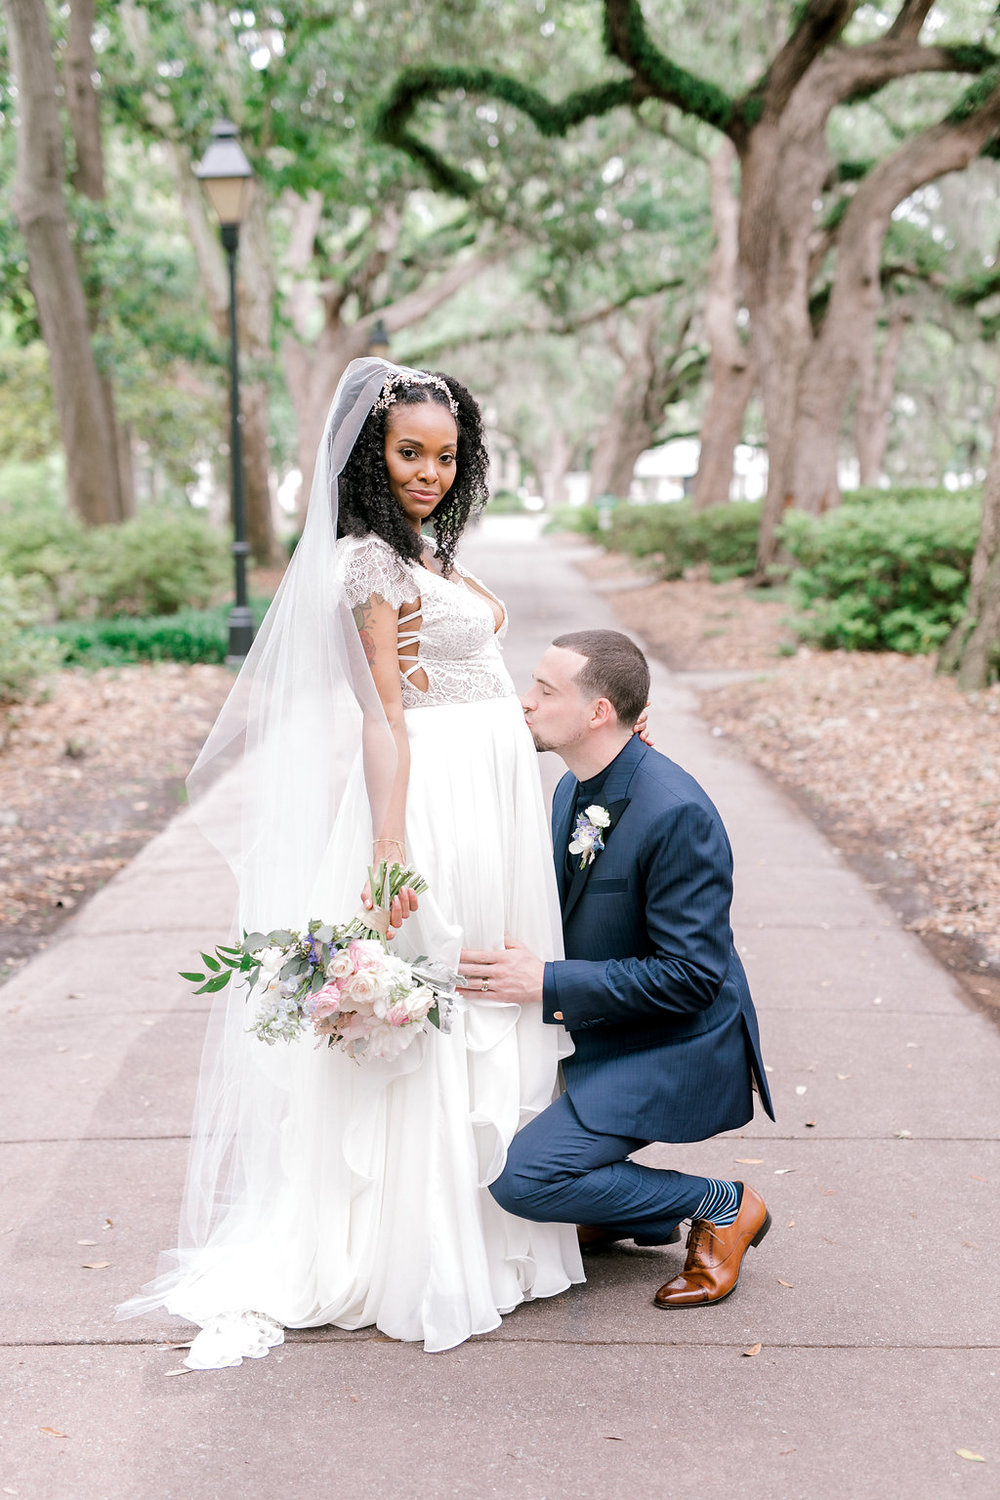 savannah-bridal-shop-i-and-b-florals-sonya-and-josh-colorful-rustic-boho-wedding-florals-at-soho-south-cafe-savannah-ga-wedding-danielle-george-photography-13.JPG